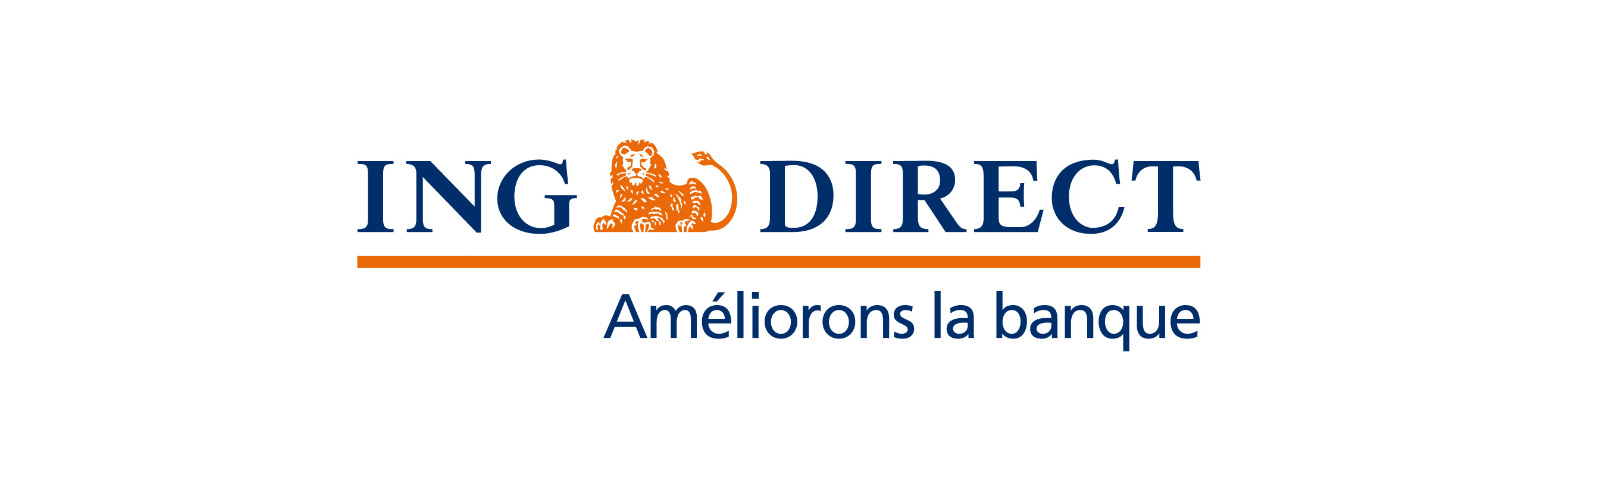 ing direct banque en ligne bonus avis conseils wannawin. Black Bedroom Furniture Sets. Home Design Ideas